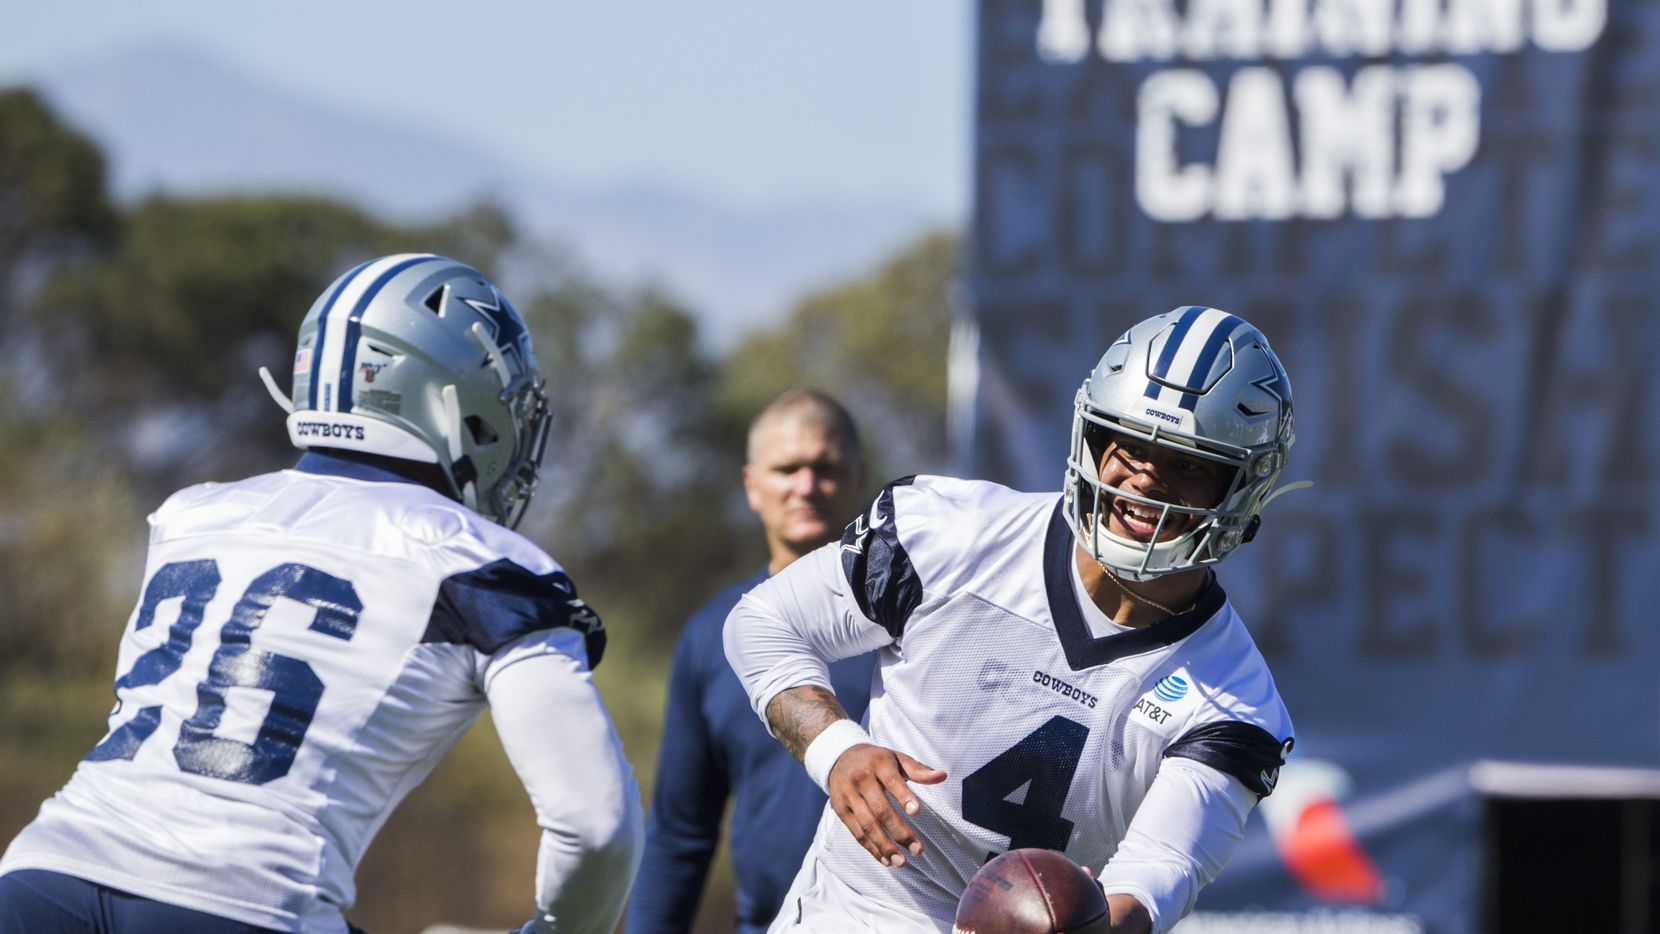 FILE — Dallas Cowboys quarterback Dak Prescott (4) and Darius Jackson (26) during an afternoon practice at training camp in Oxnard, California on Saturday, July 27, 2019.  The coronavirus pandemic has forced the Cowboys to begin their 2020 training camp at their own facility for the first time in franchise history.